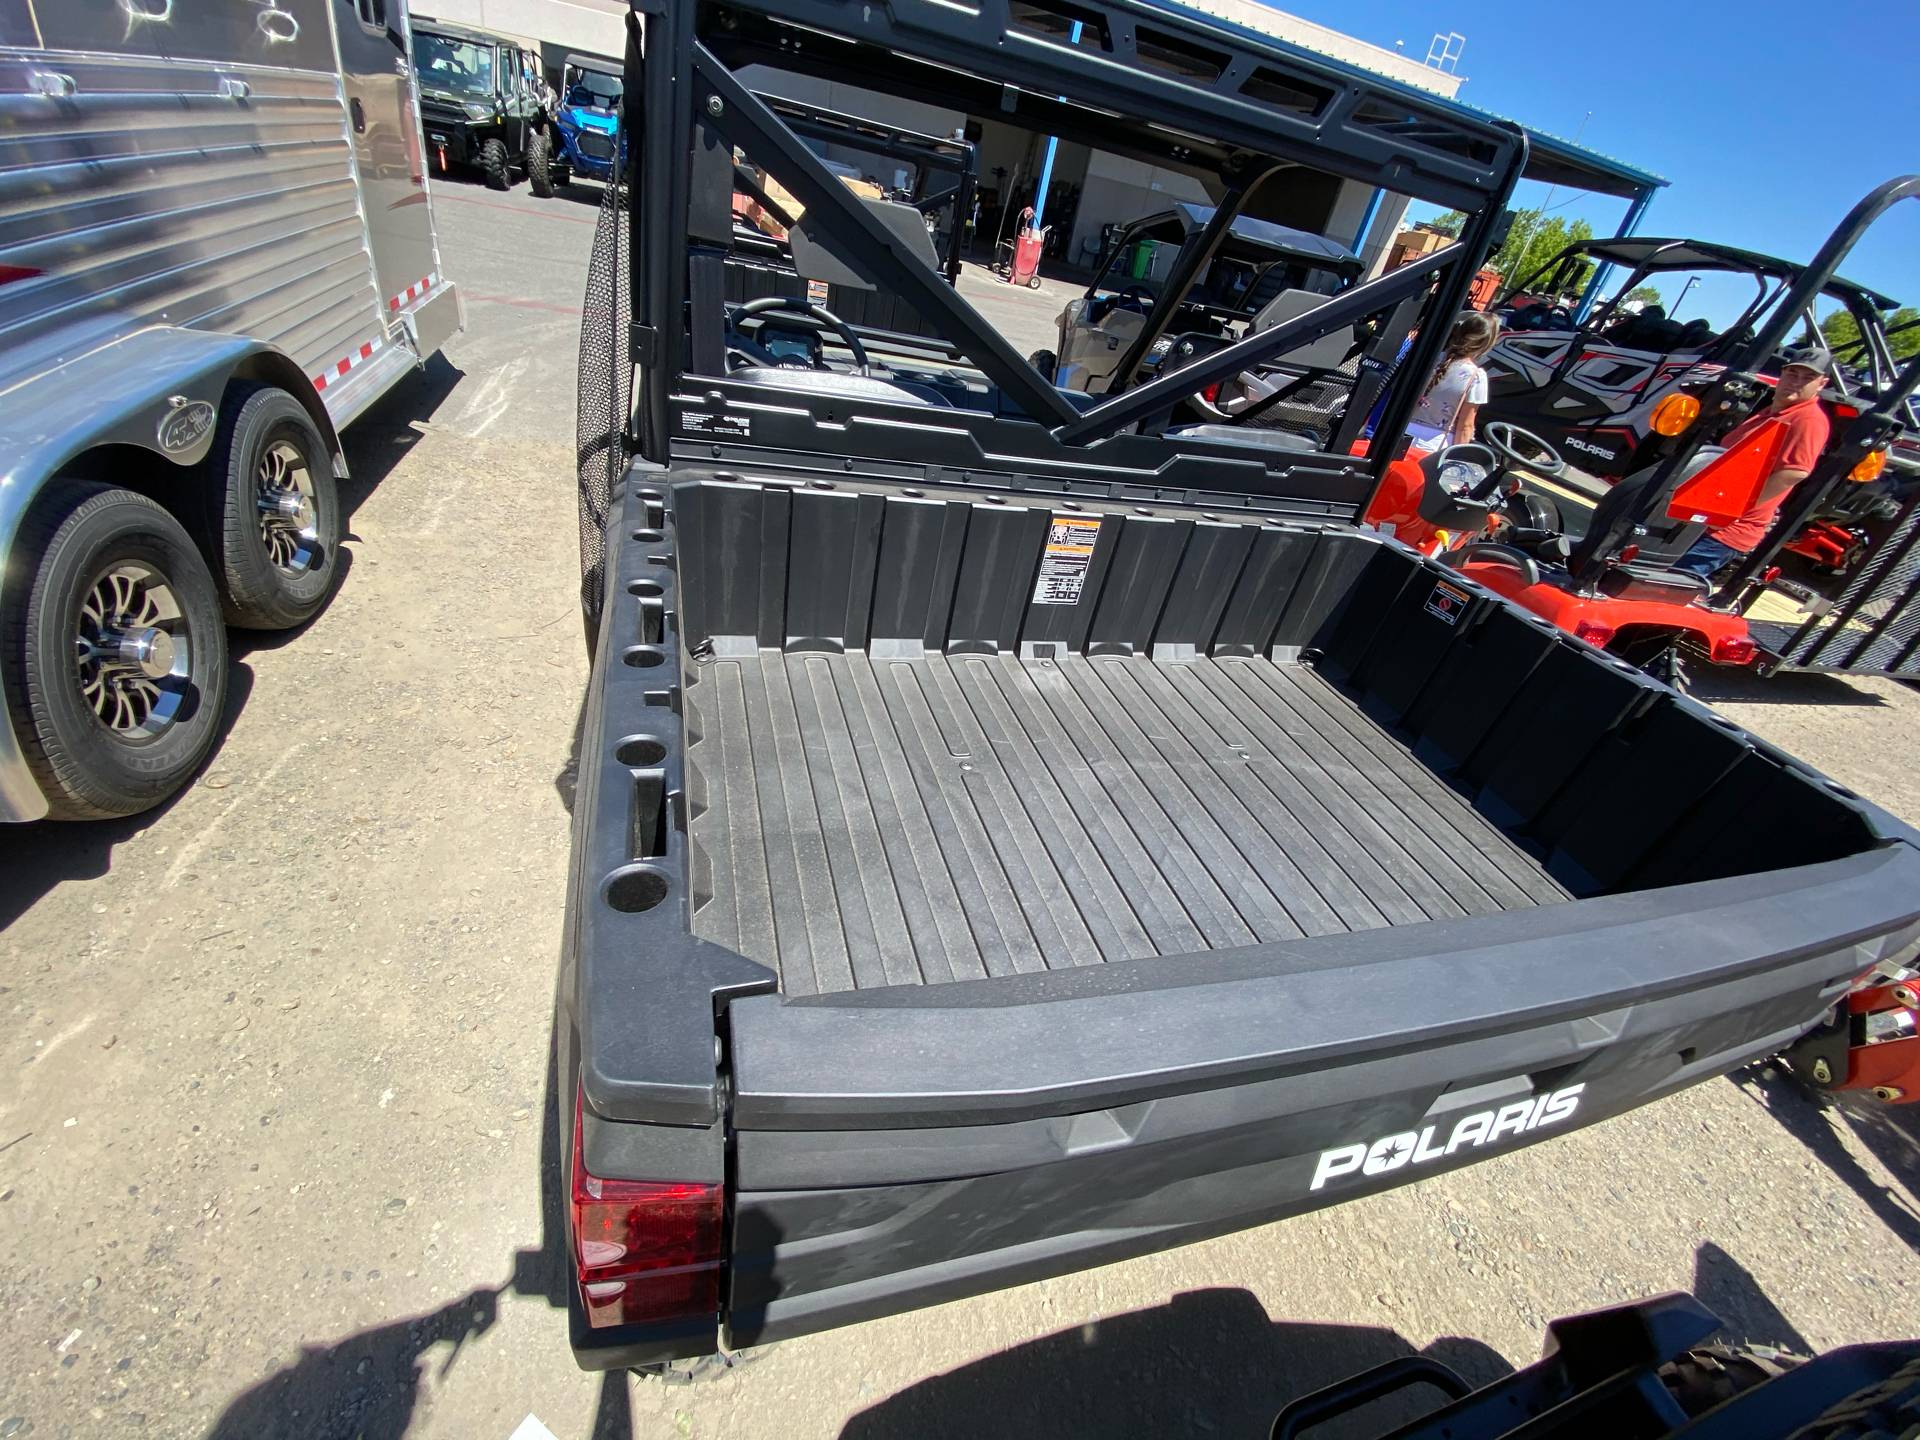 2021 Polaris Ranger 1000 EPS in Elk Grove, California - Photo 11